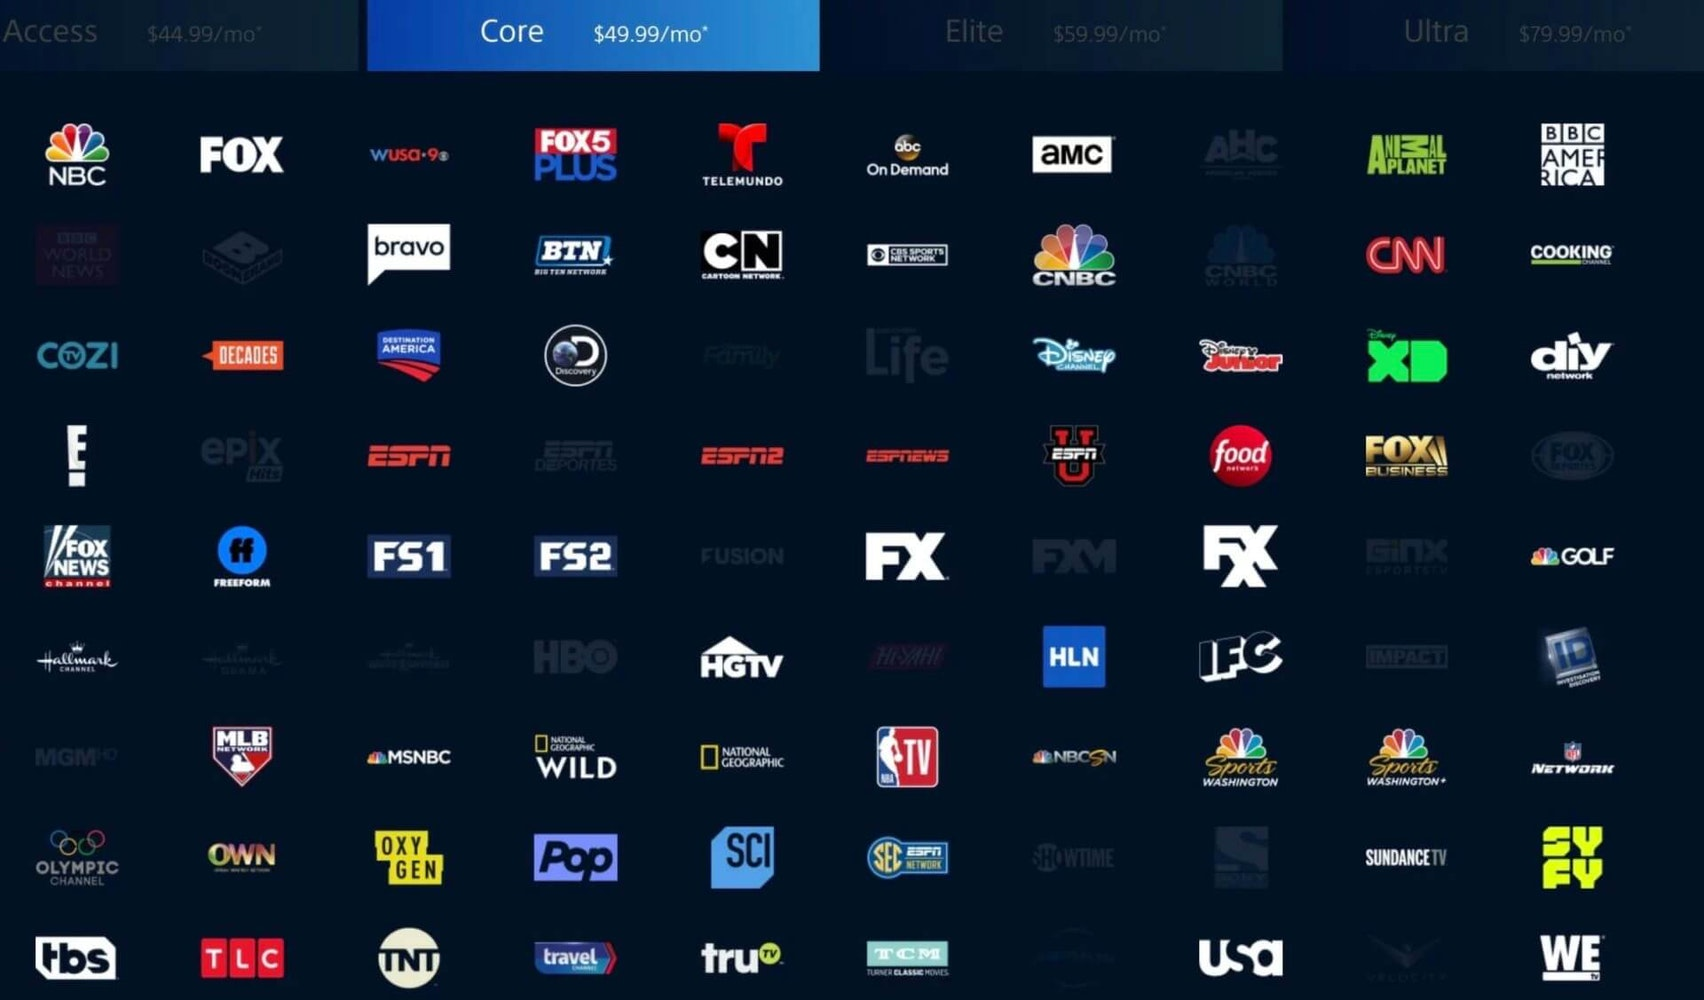 2019-20 premier league manchester united vs arsenal soccer live stream free playstation vue